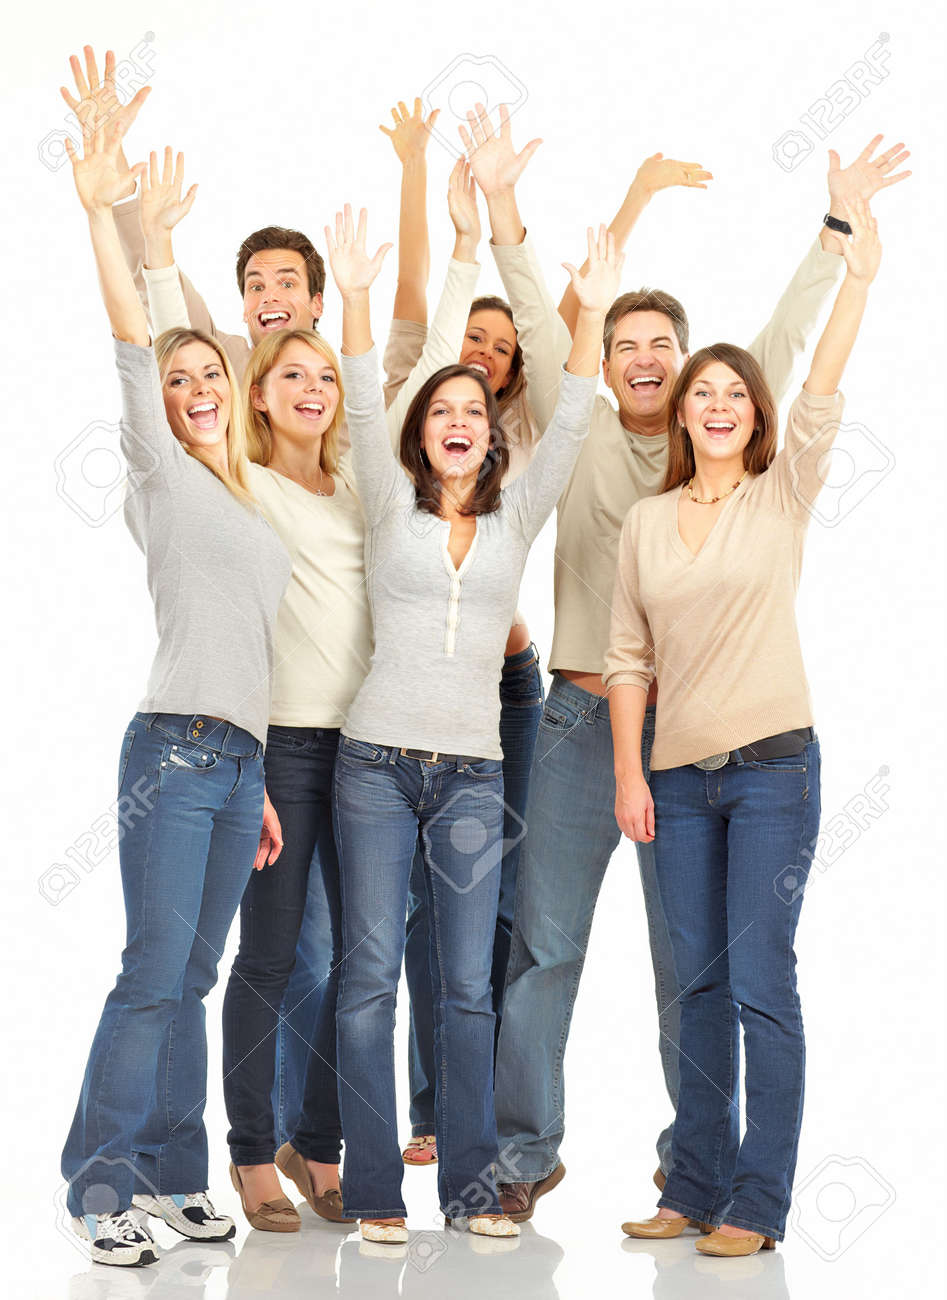 Happy funny people. Isolated over white background Stock Photo - 5641988